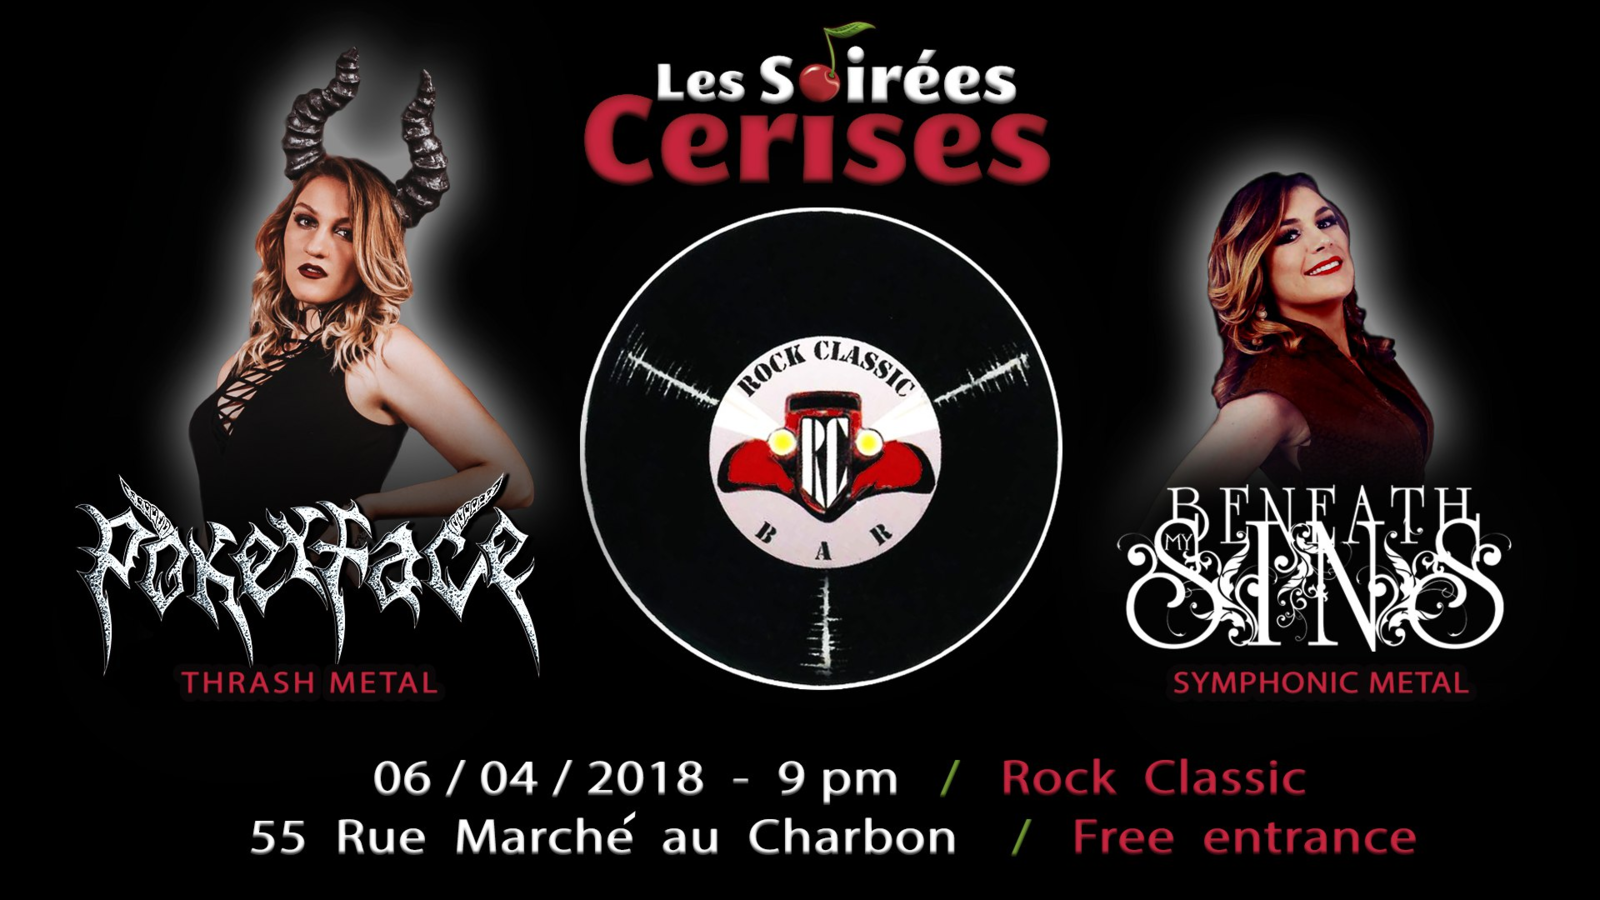 ▶ Pokerface (Russia) + Beneath my sin (F) @ Rock Classic - 21h00 - Free entrance